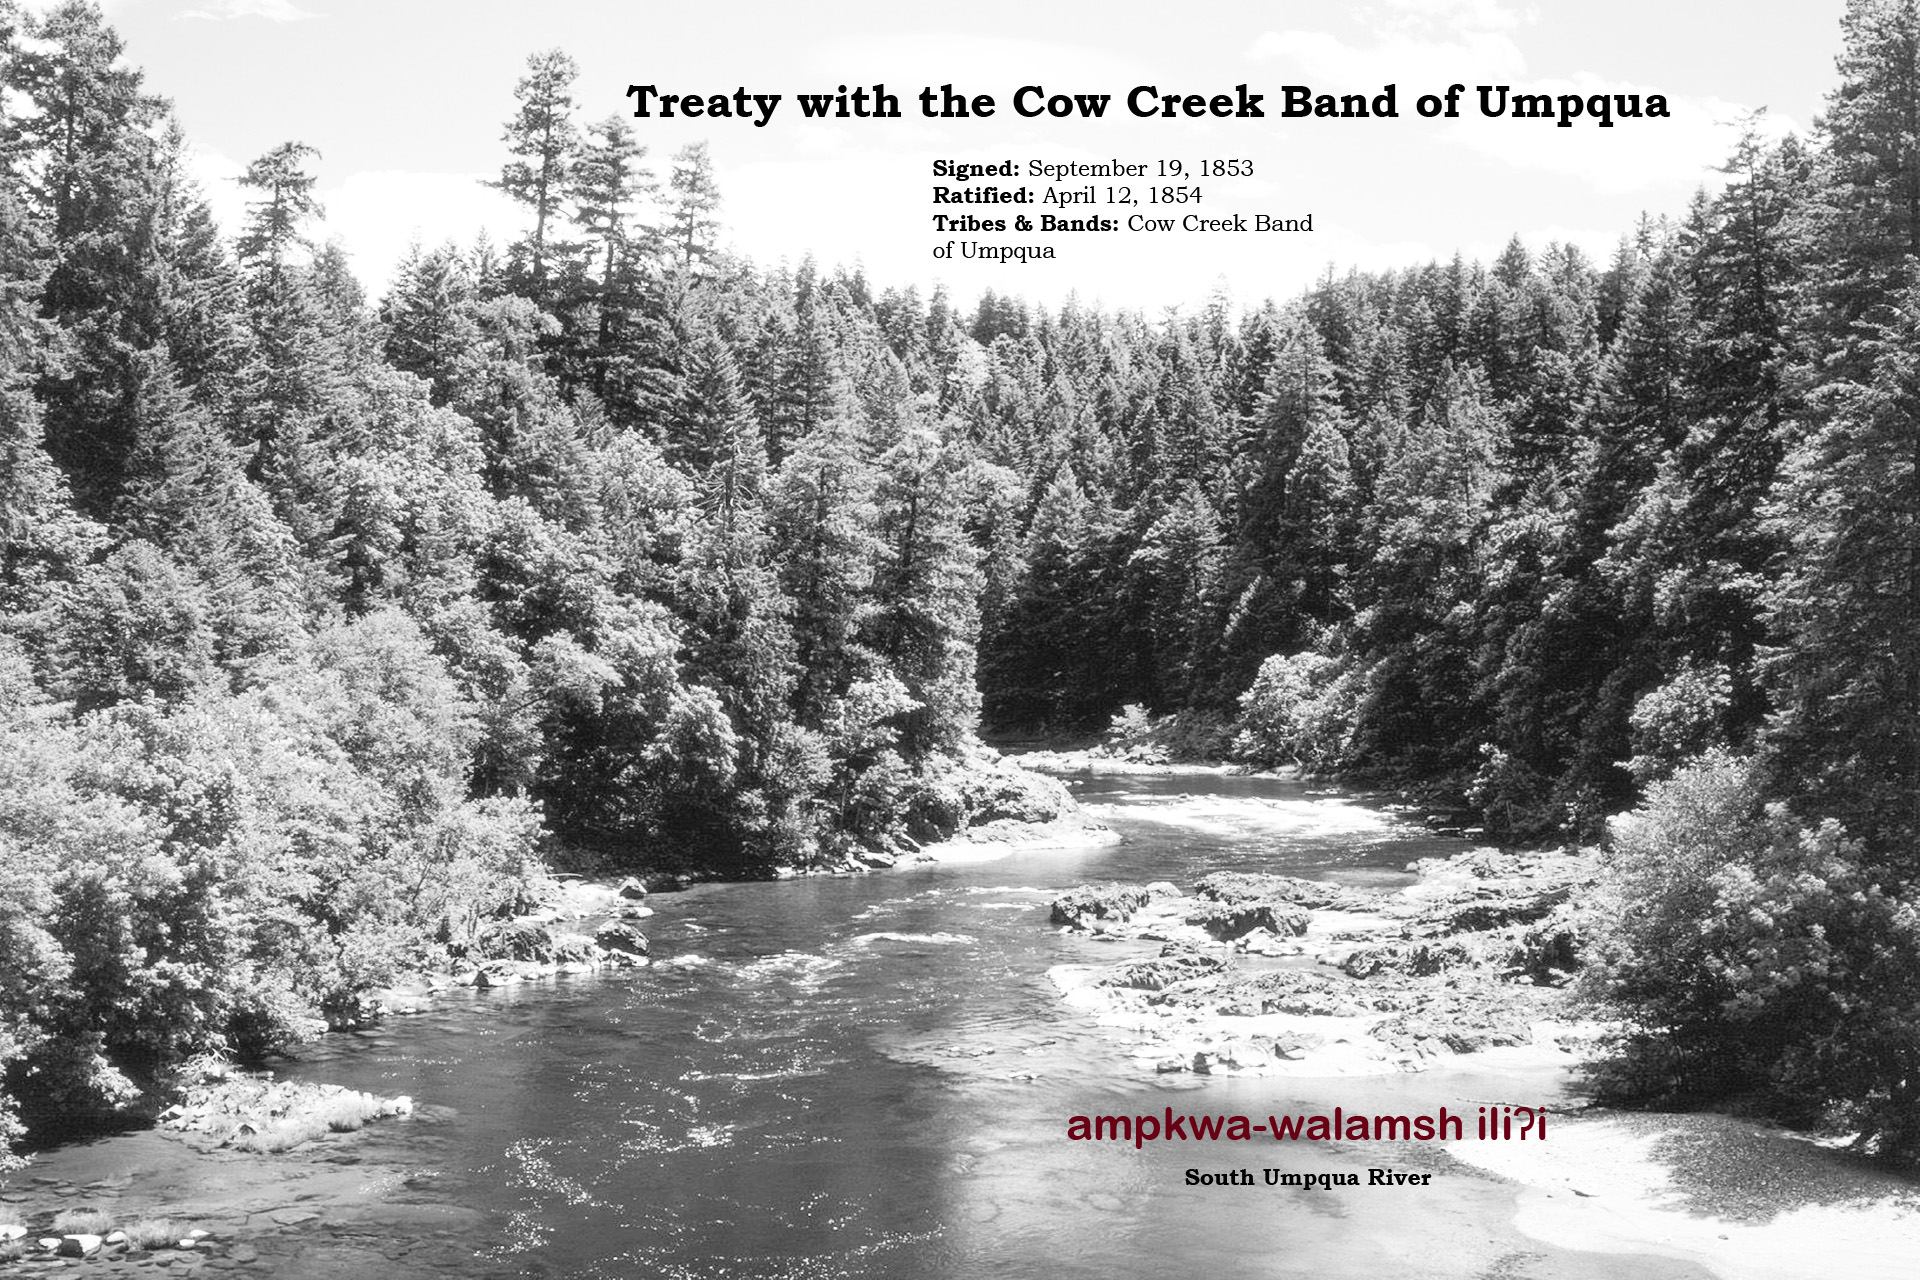 Umpqua Cow Creek Treaty 1853